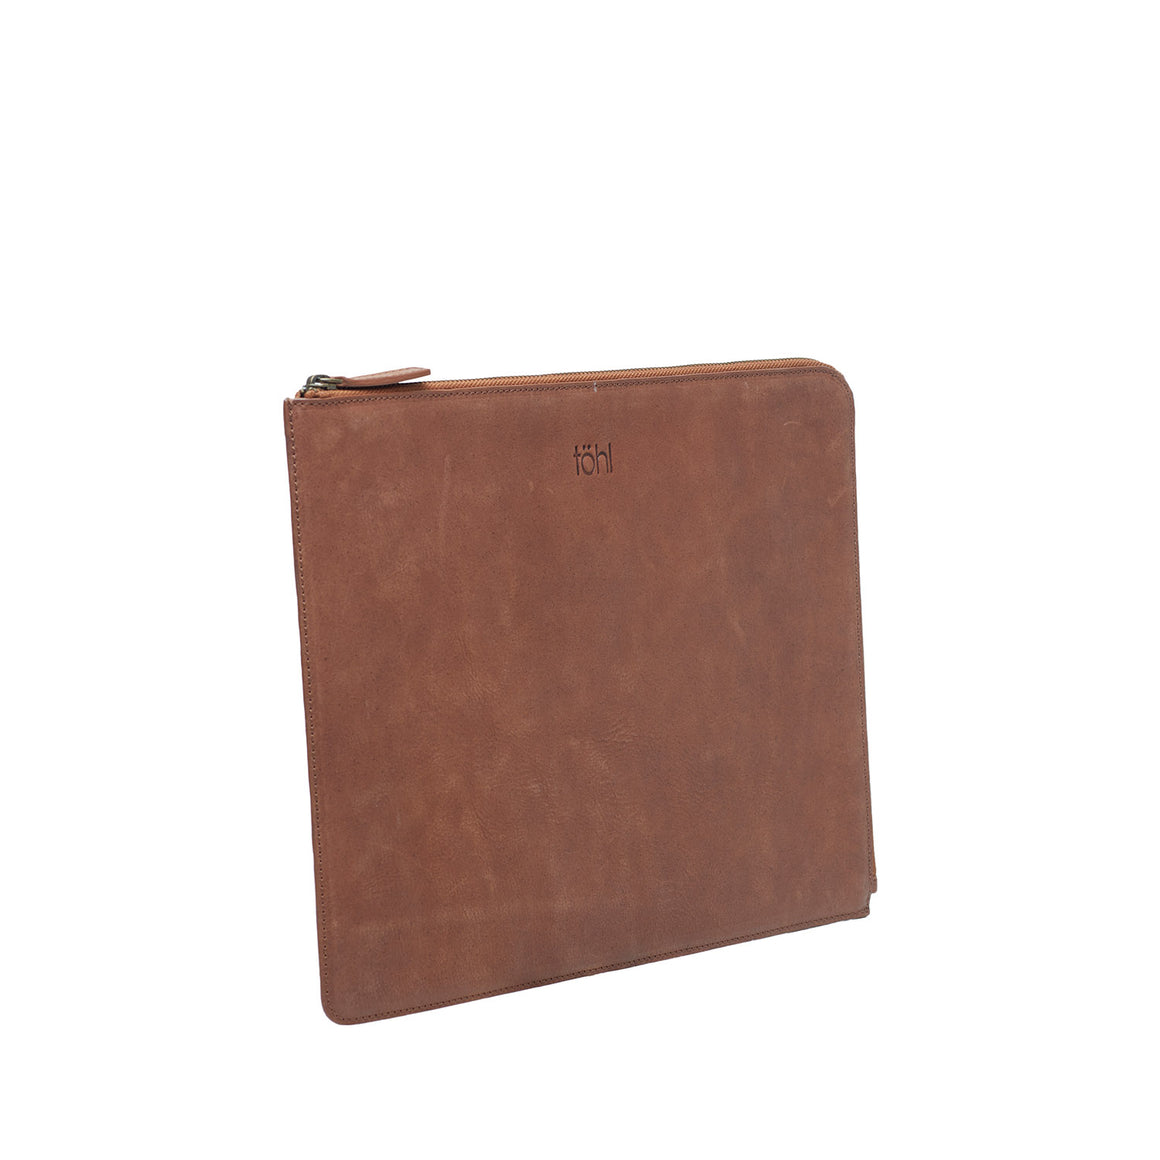 LC 0002 - TOHL GALOIES MEN'S IPAD SLEEVE - TAN